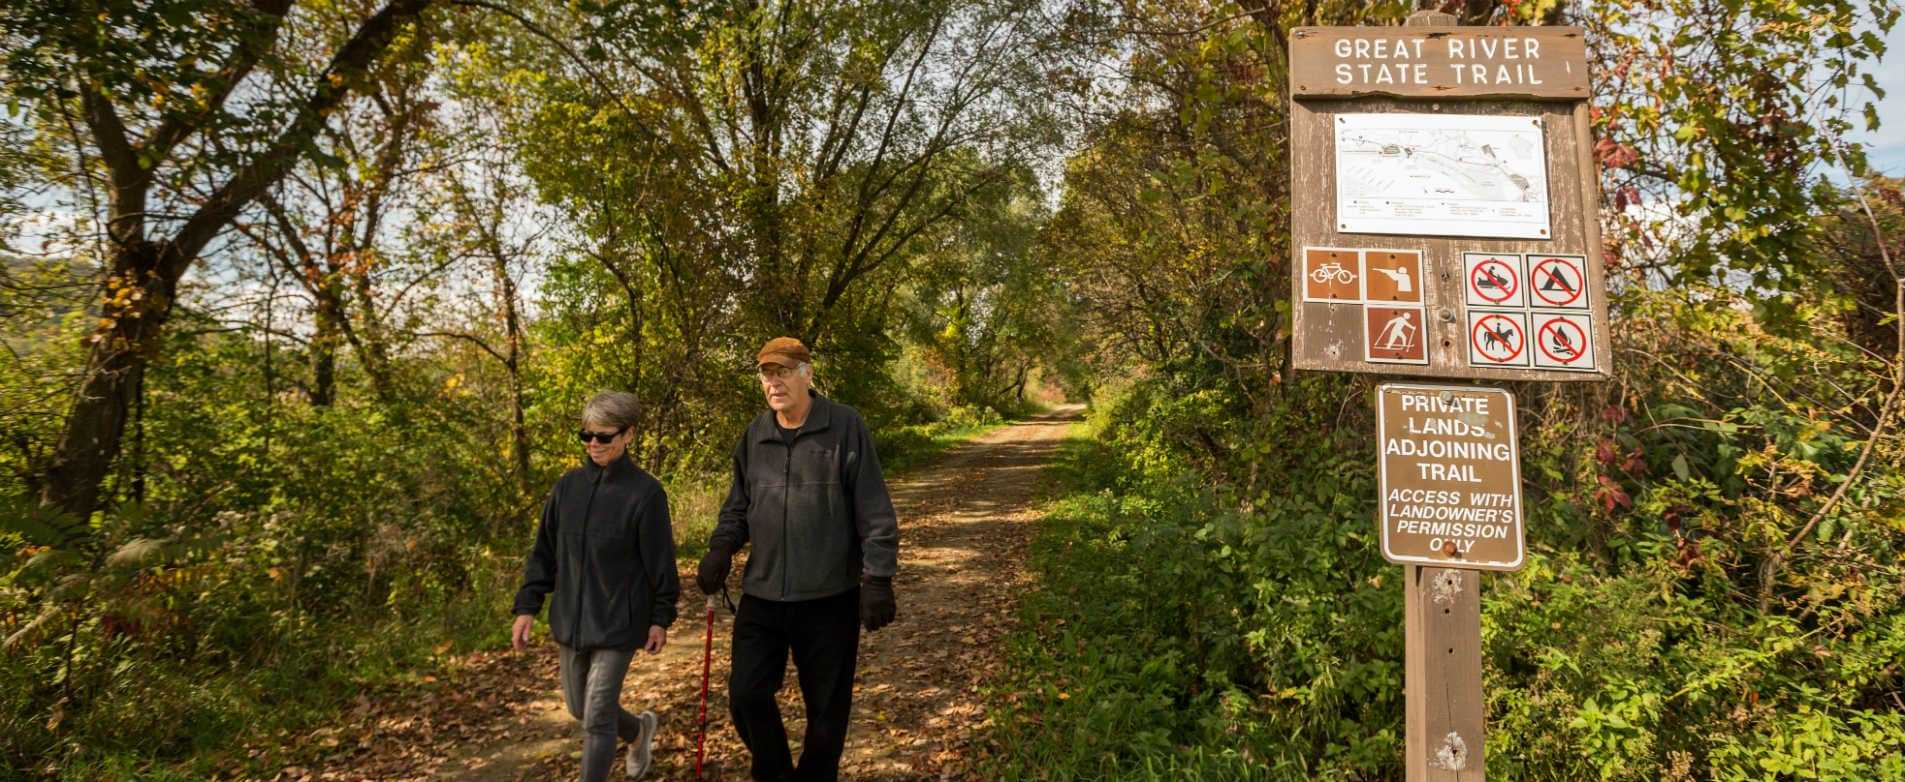 Couple Hiking on Great River State Trail